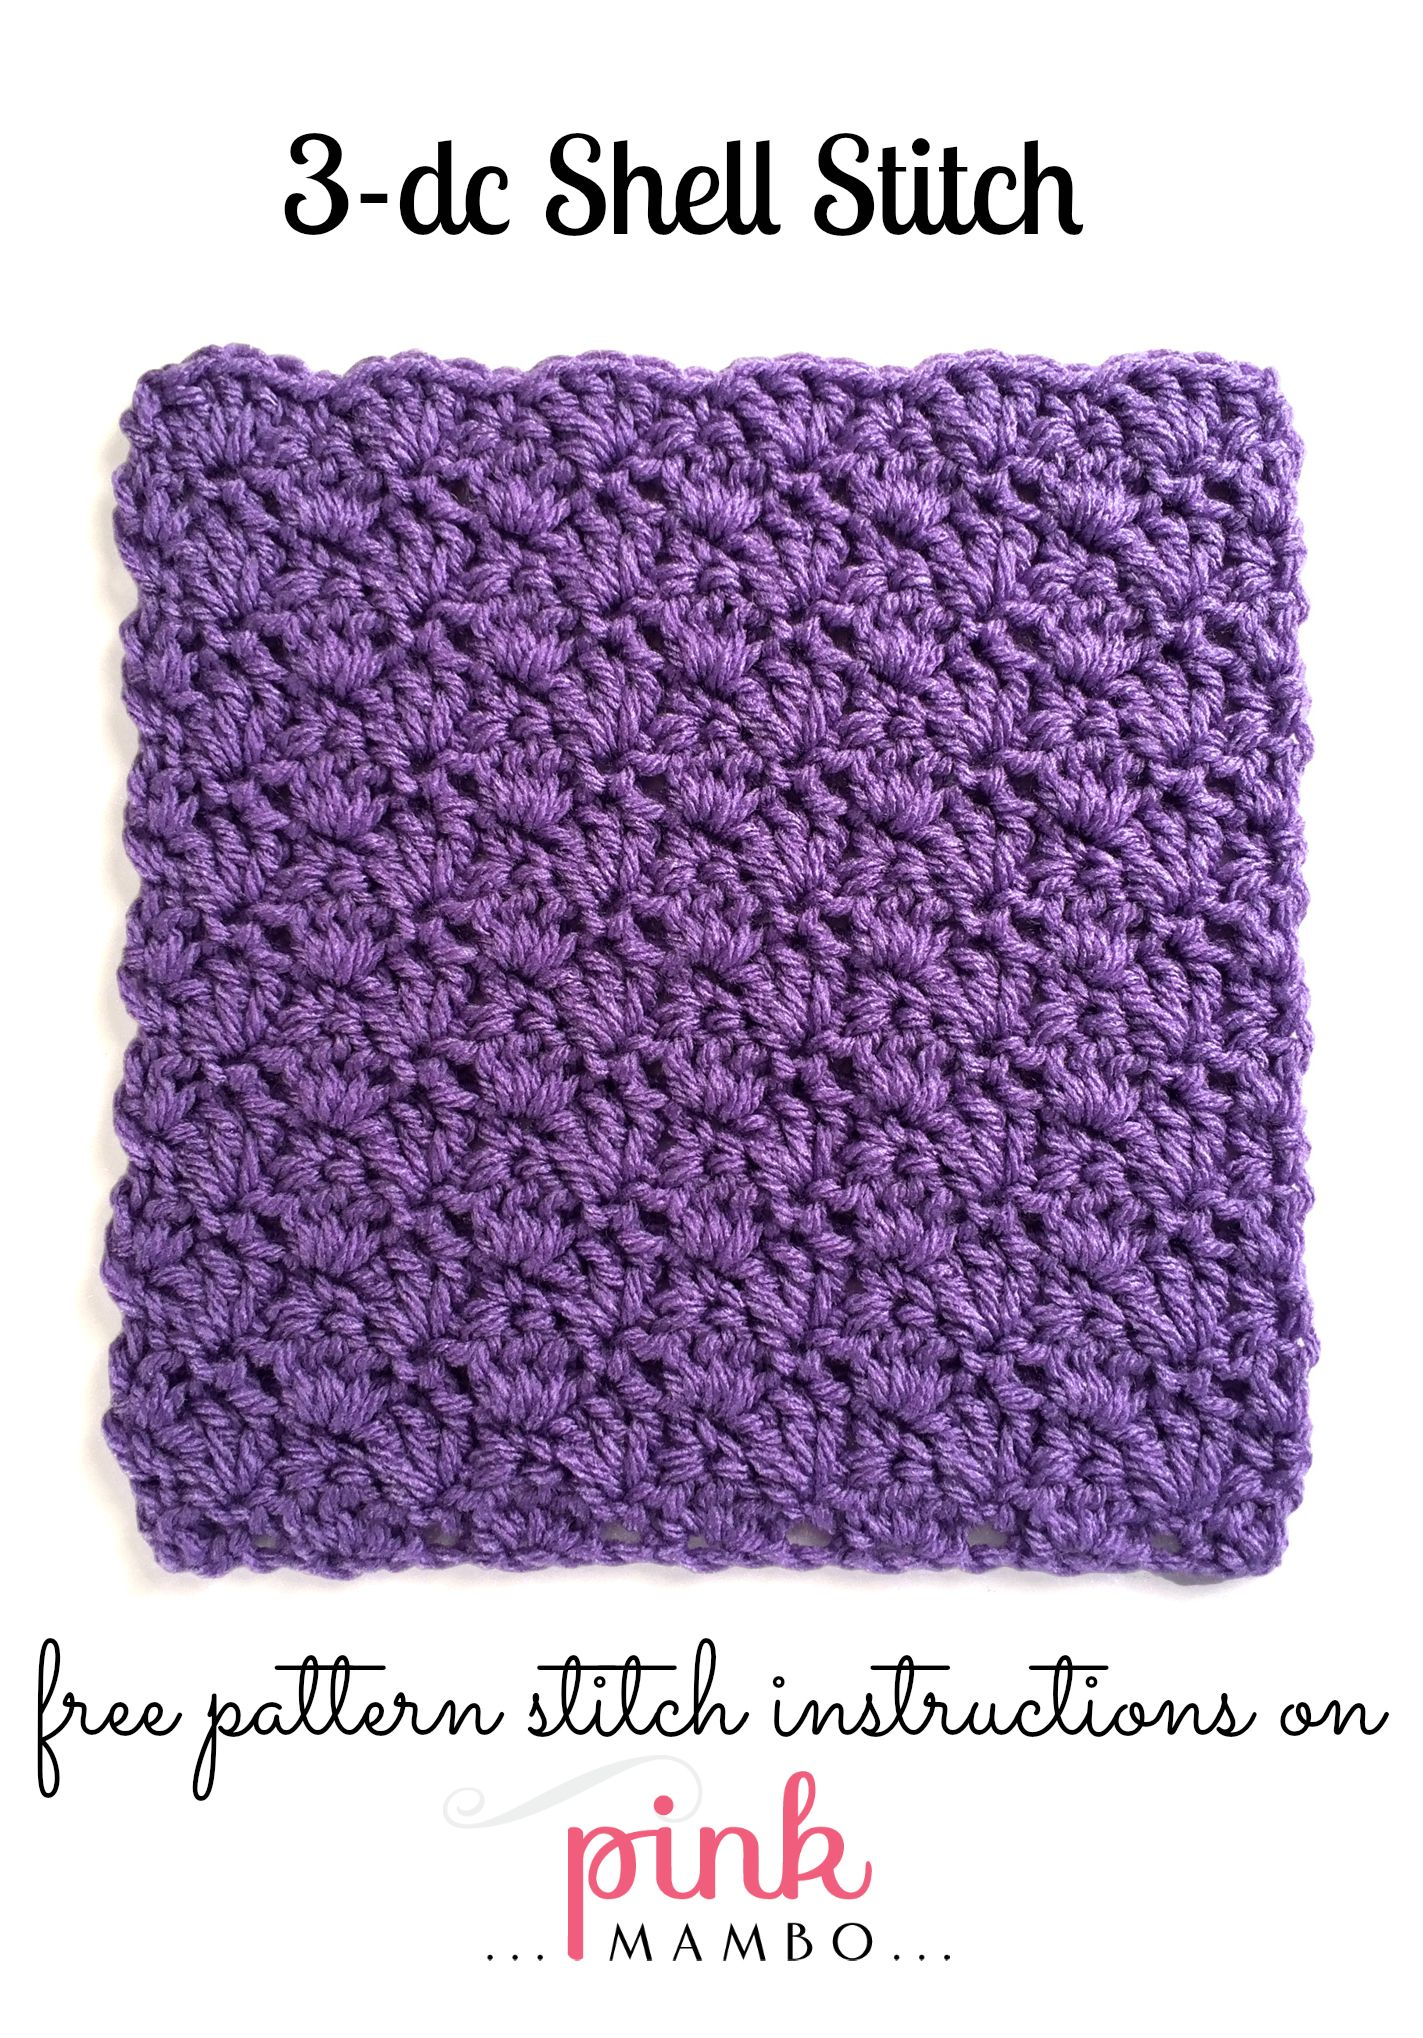 3-Double Crochet Shell Stitch Pattern | Crochet patterns Pink Mambo ...